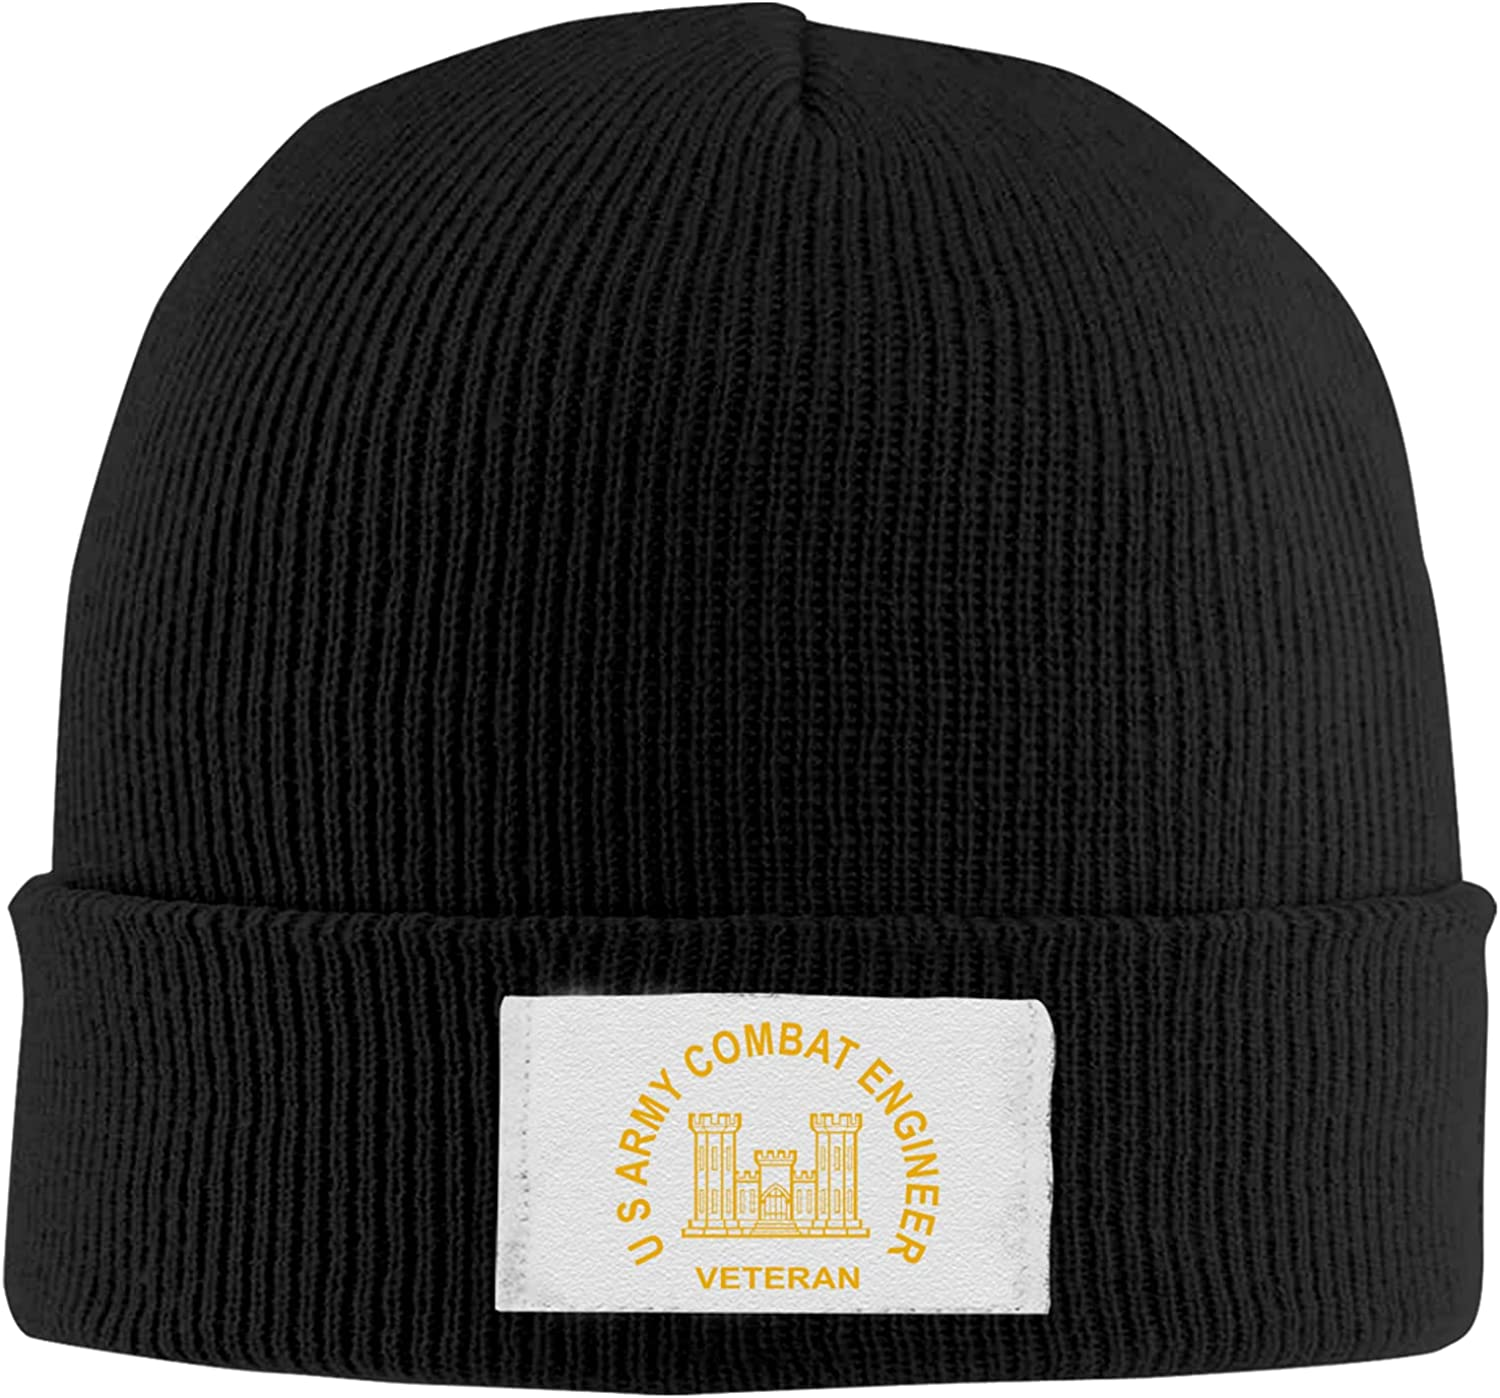 U Ranking TOP13 S Army Combat Engineer Selling and selling Trendy Beanie Bump K Winter Cap Stylish